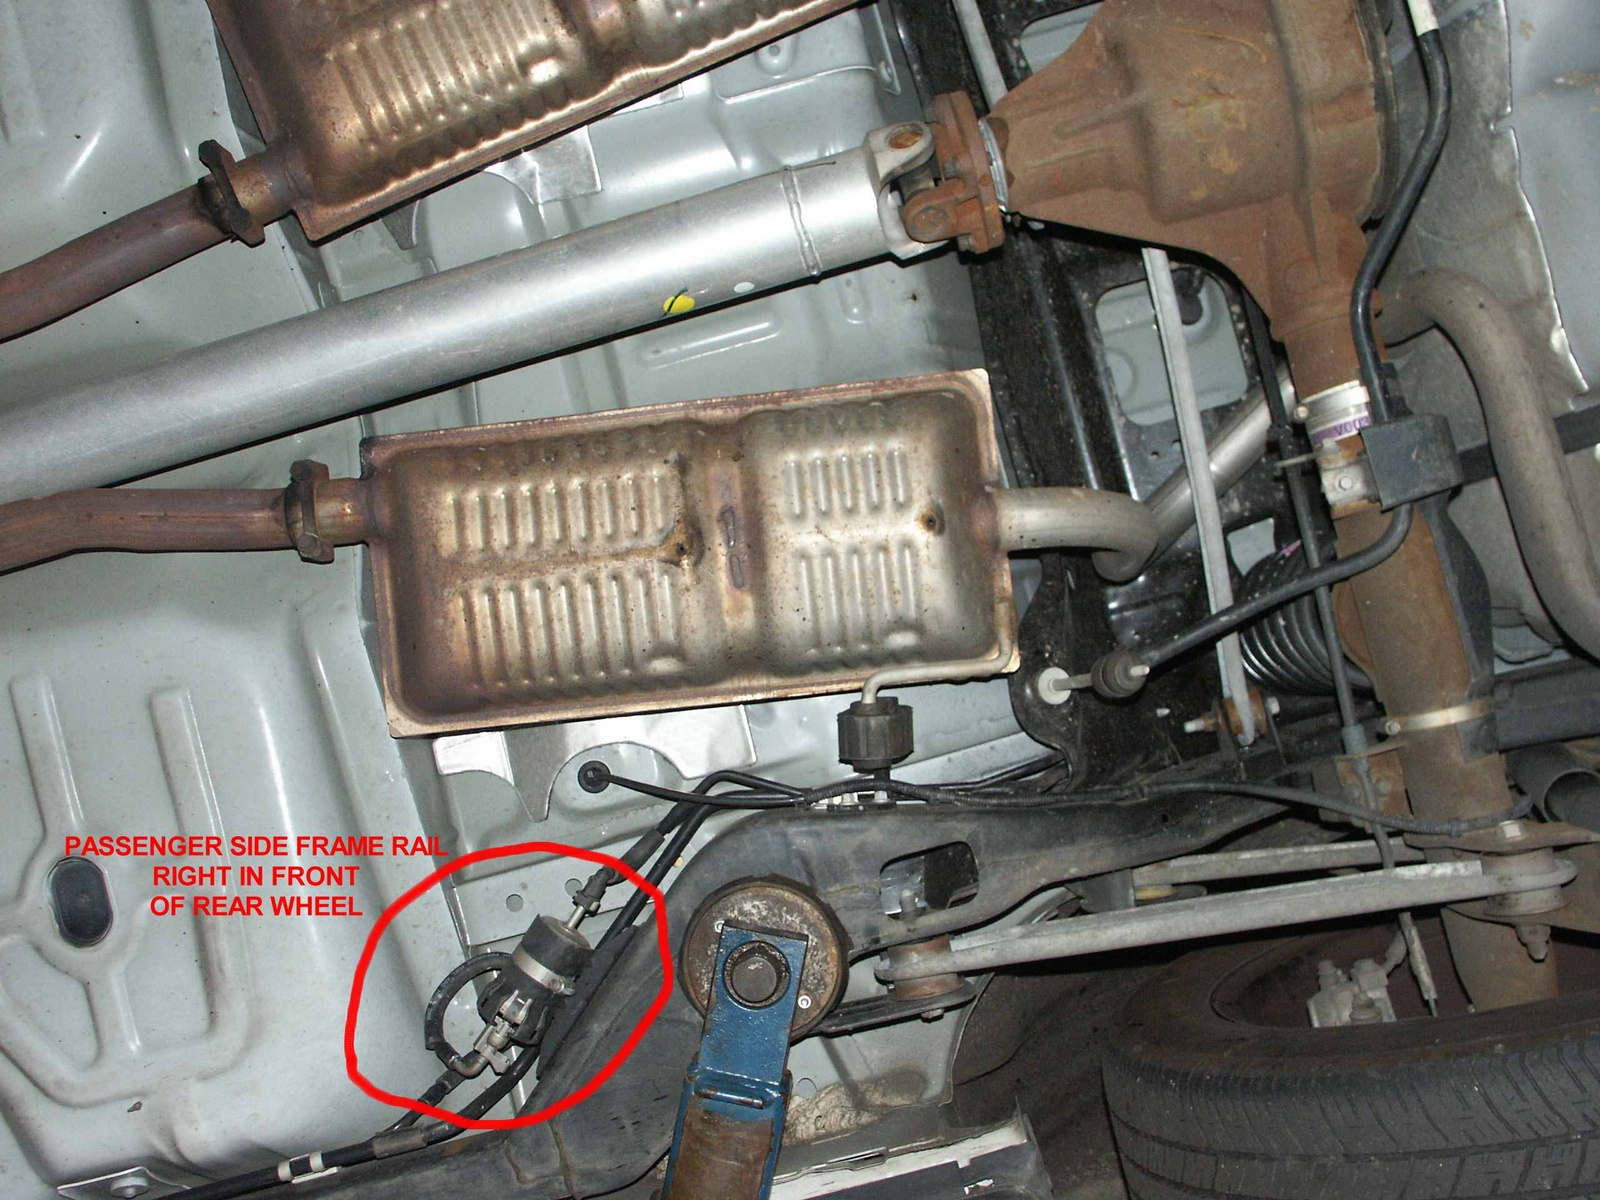 97 Mustang Gt Fuel Filter Location Wiring Library Ford Ltd Crown Victoria Questions Where Is The On A Line Replacement